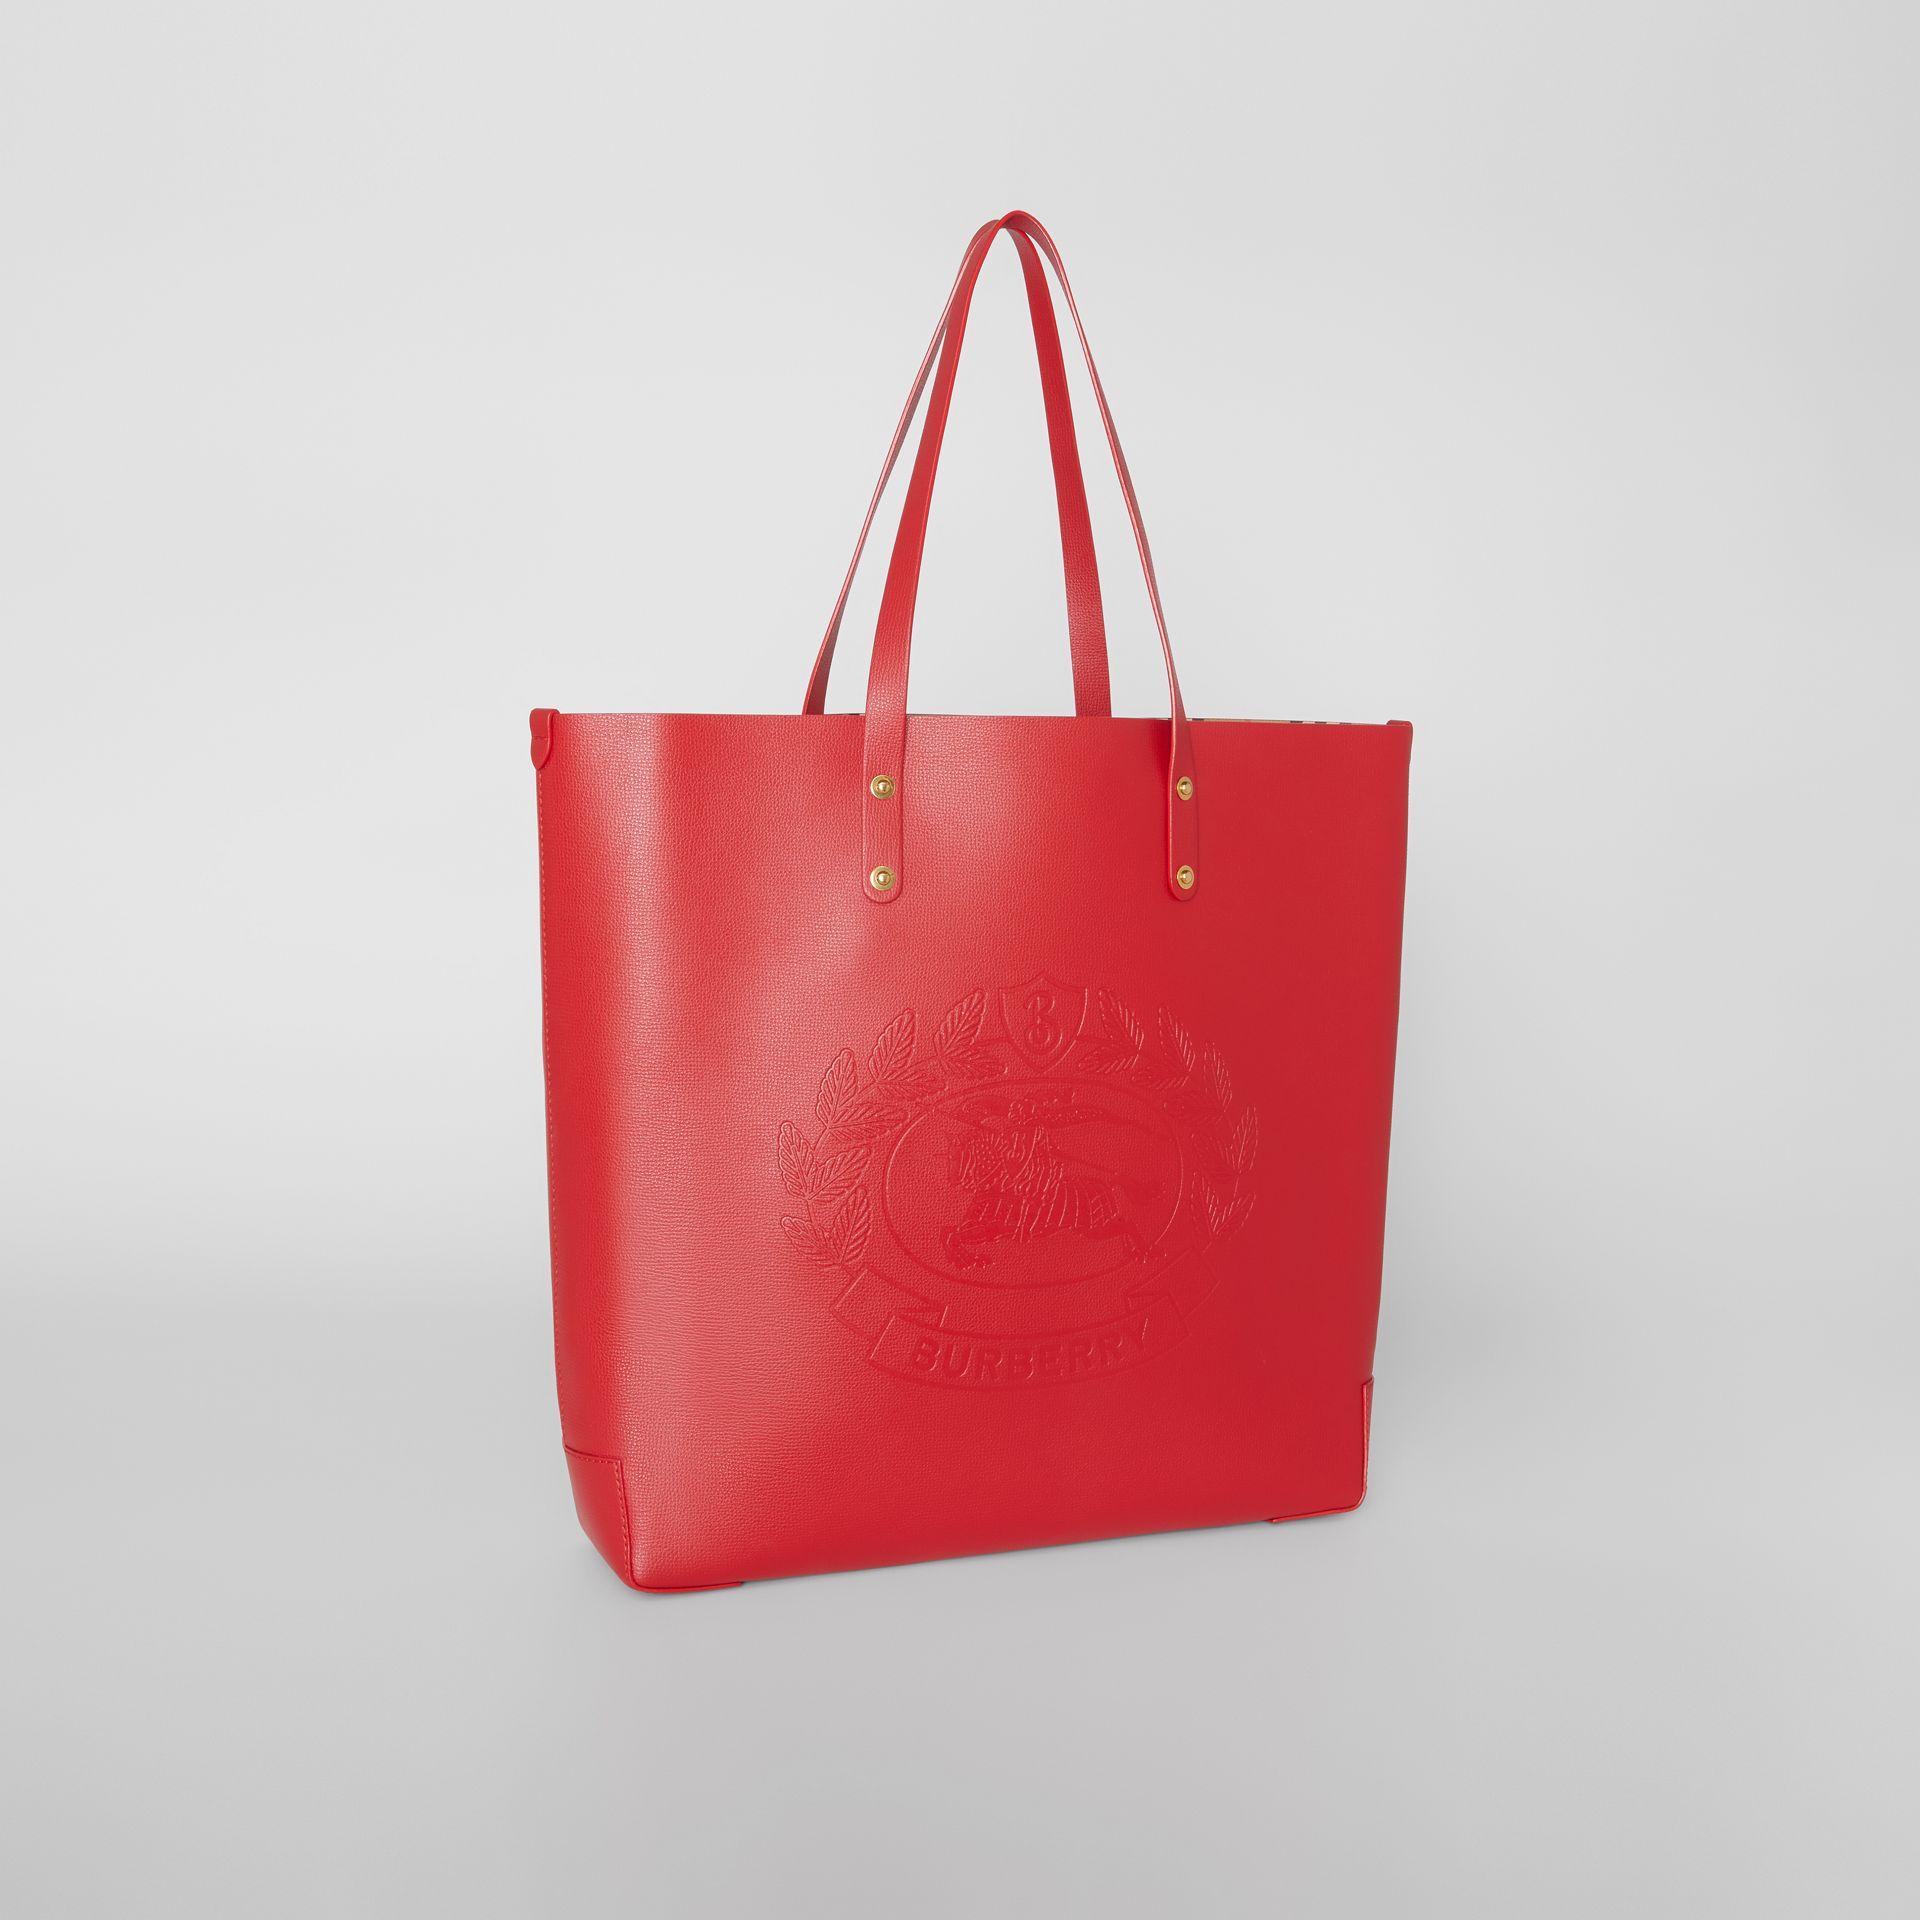 Embossed Crest Leather Tote in Rust Red - Women | Burberry - gallery image 6